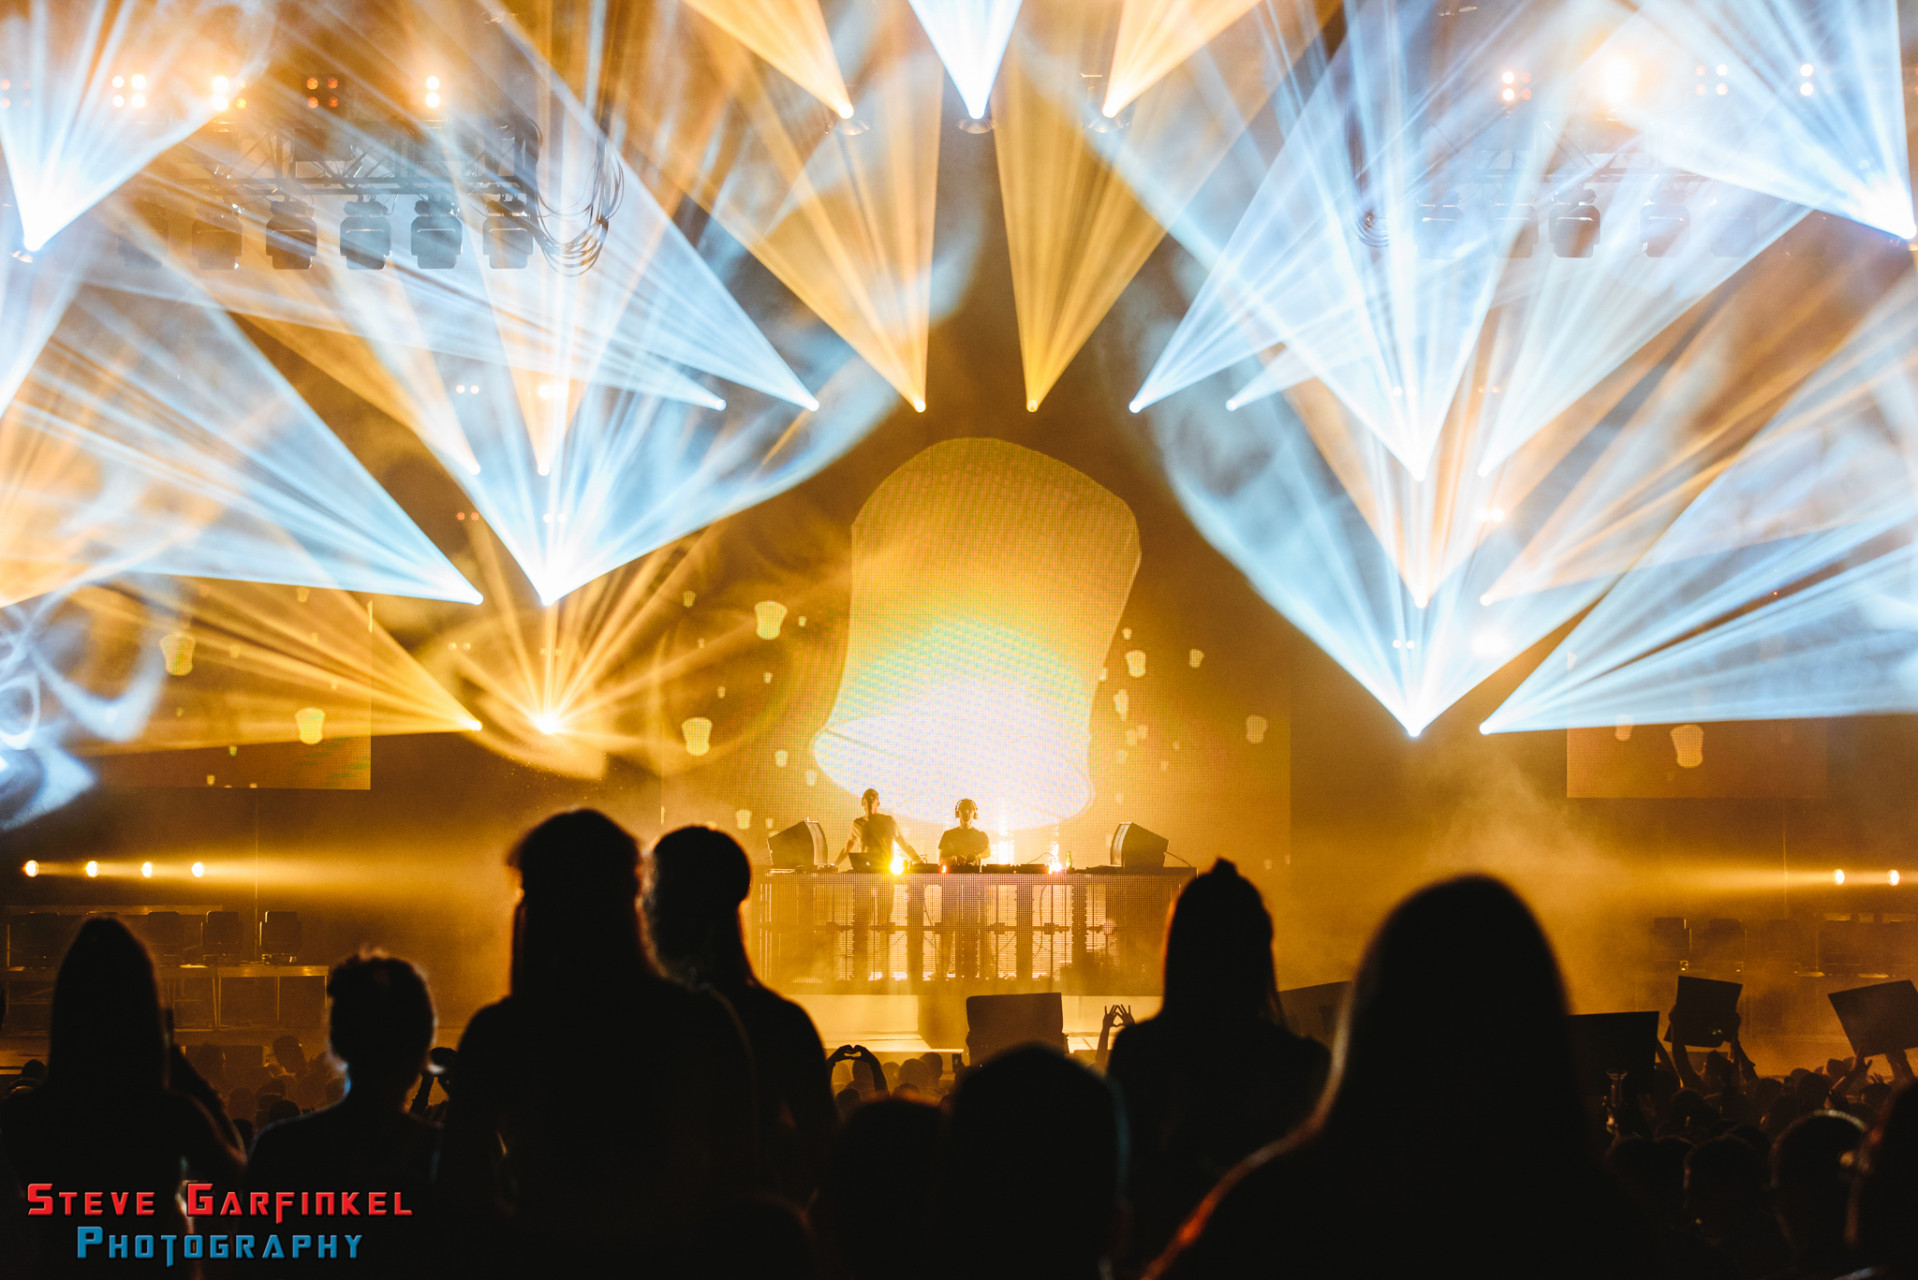 Above-Beyond_GARFINKEL-73